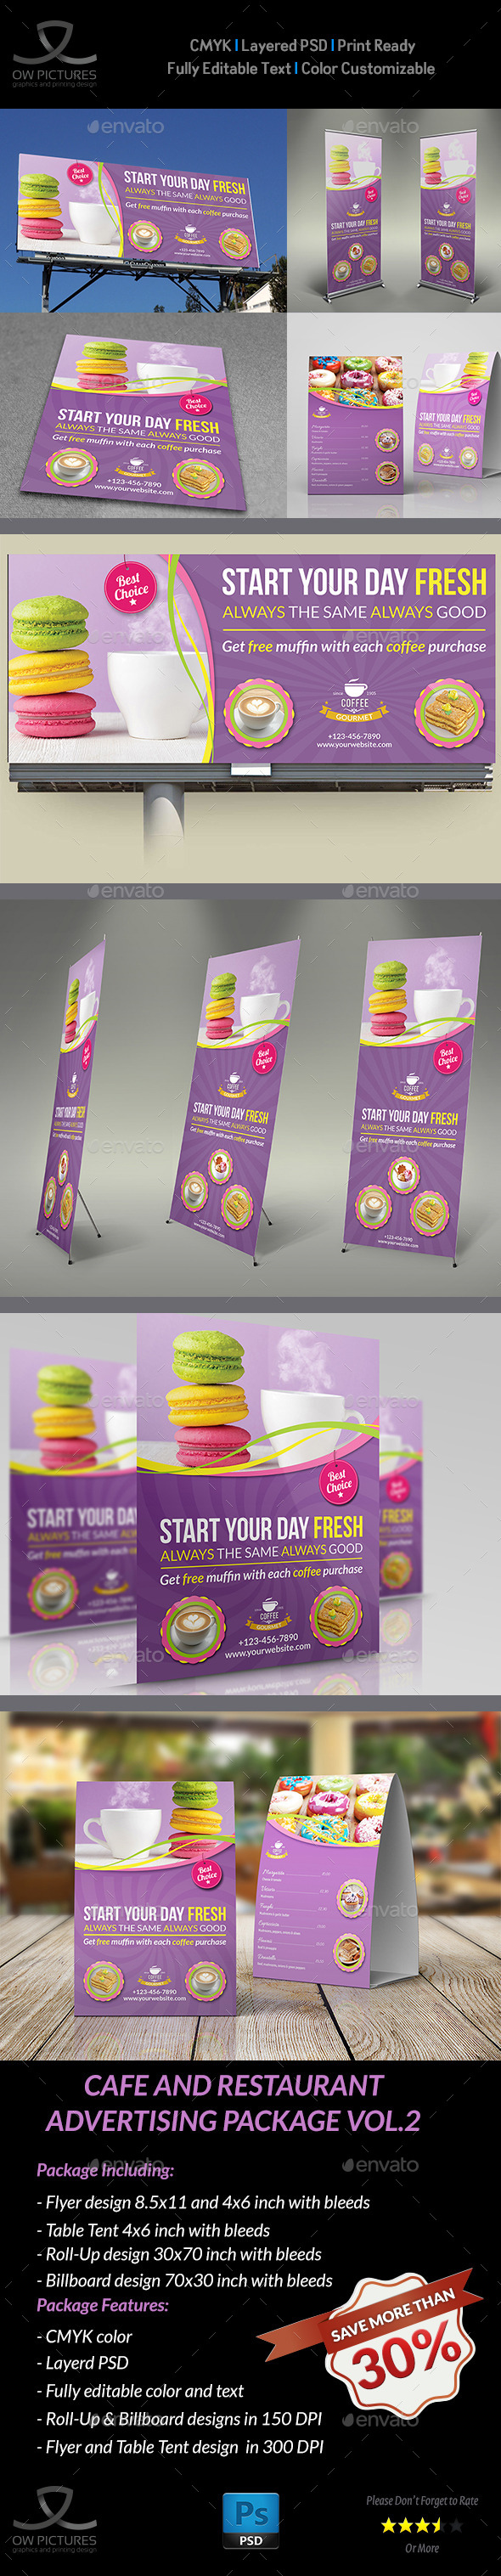 Cafe and Restaurant Advertising Bundle Vol.2 - Signage Print Templates